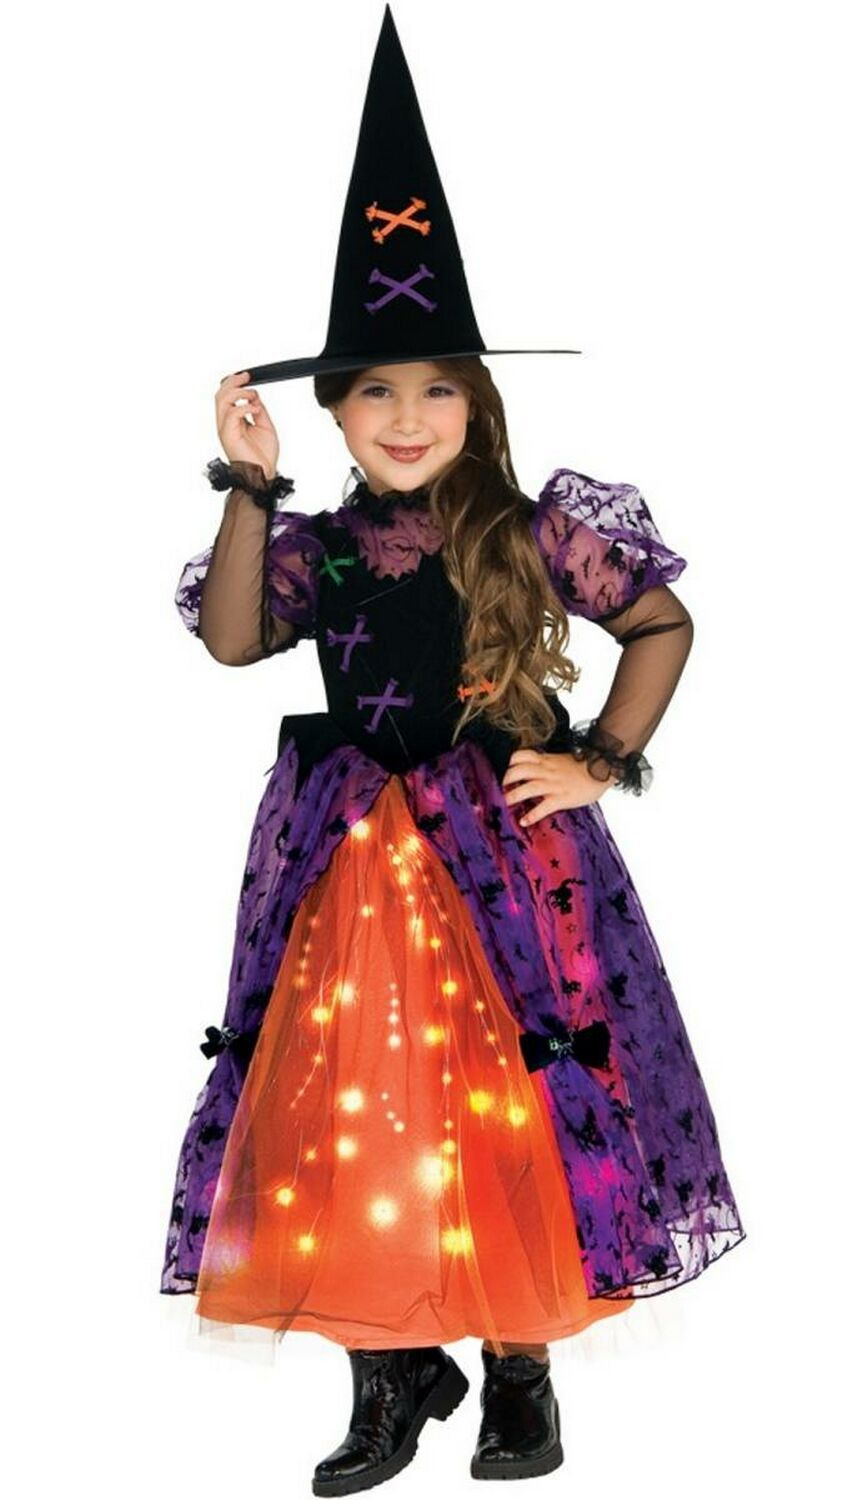 Pretty Light Up Witch Kids Costume   Witch Costumes   Pinterest ...